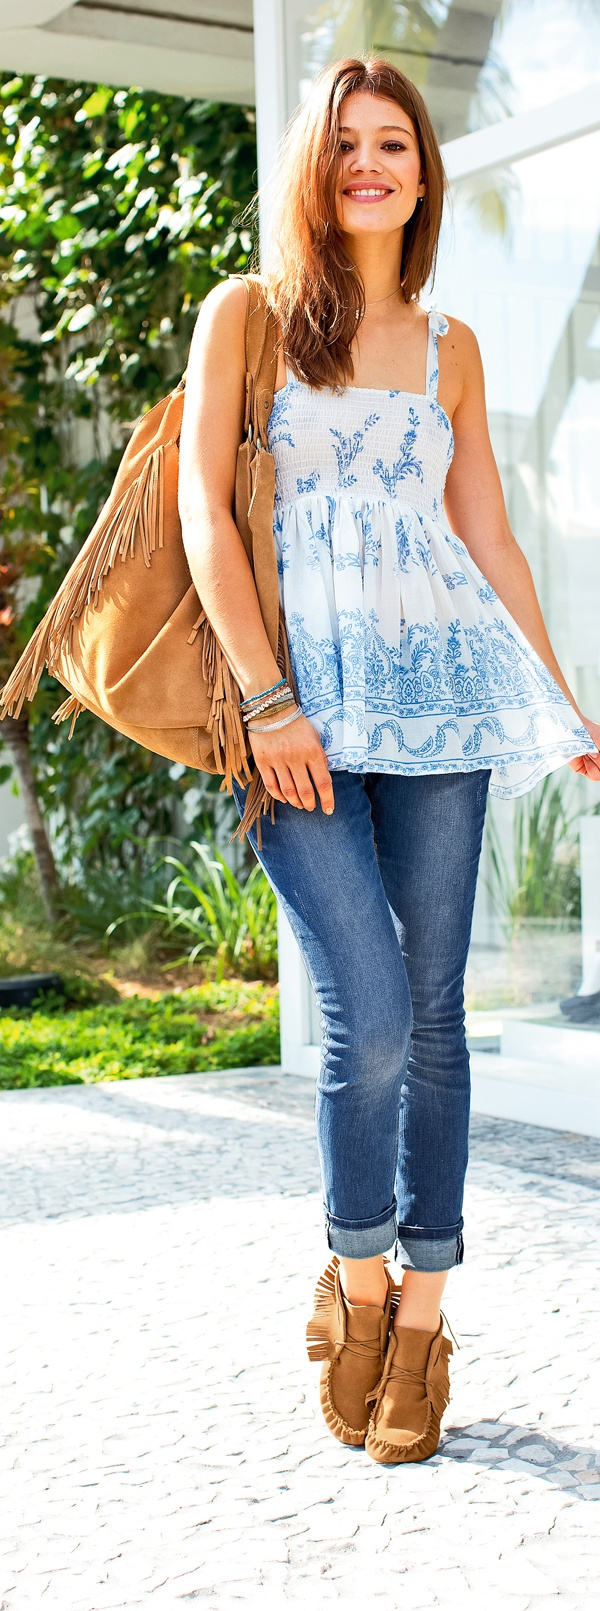 Trends For Spring Summer Clothes For Real Women Over 40: 177 Best Images About Key West What To Wear On Pinterest